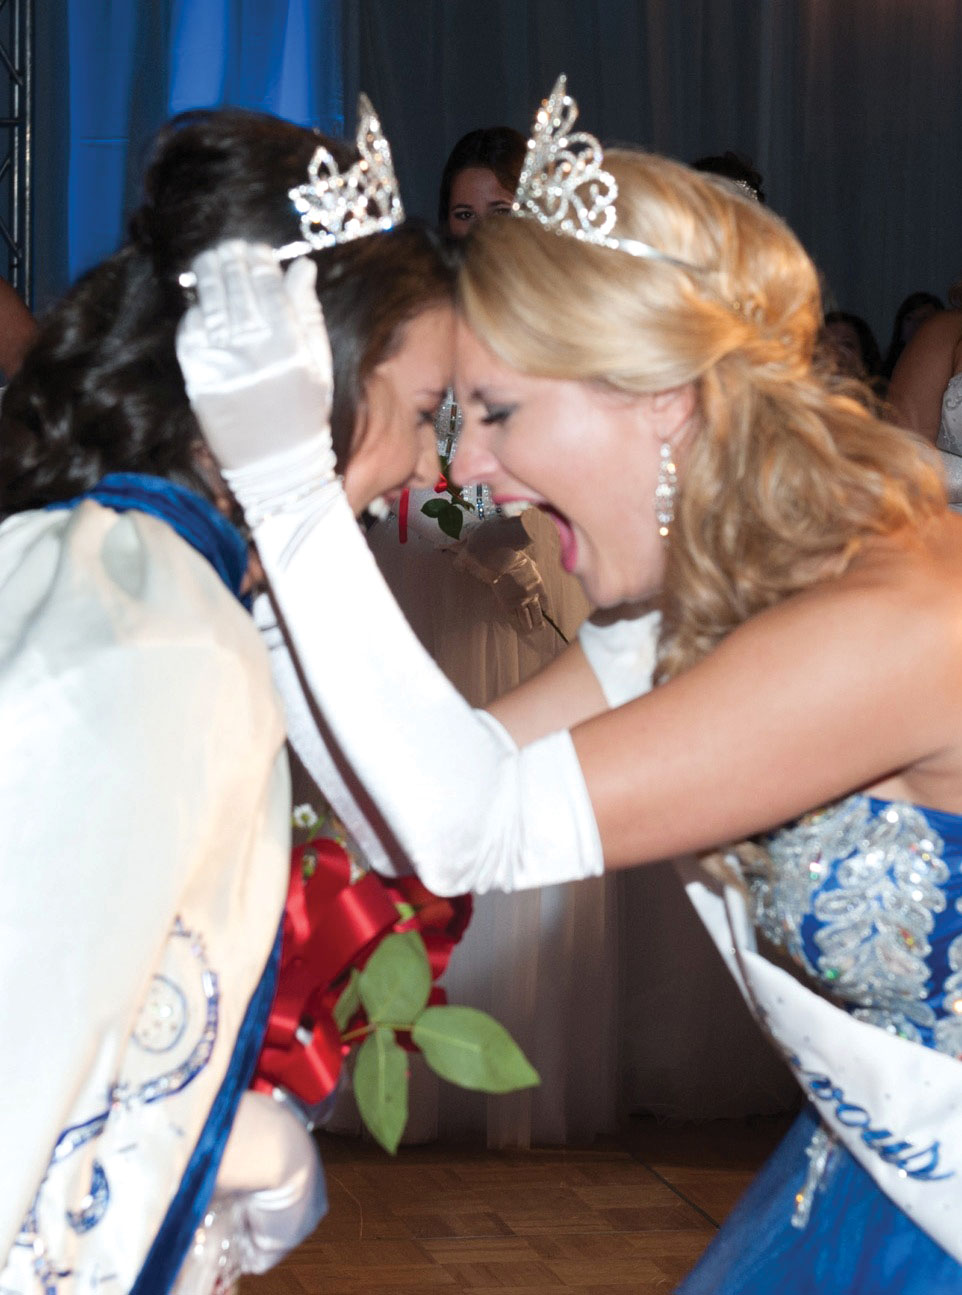 Look for plenty of excitement at the Lunar Rendezvous Coronation Ball when a new queen is crowned. Here, 2014 Queen Sydney Schroder, right, shares the exciting moment with  2015 Queen Allison Maureen Powell